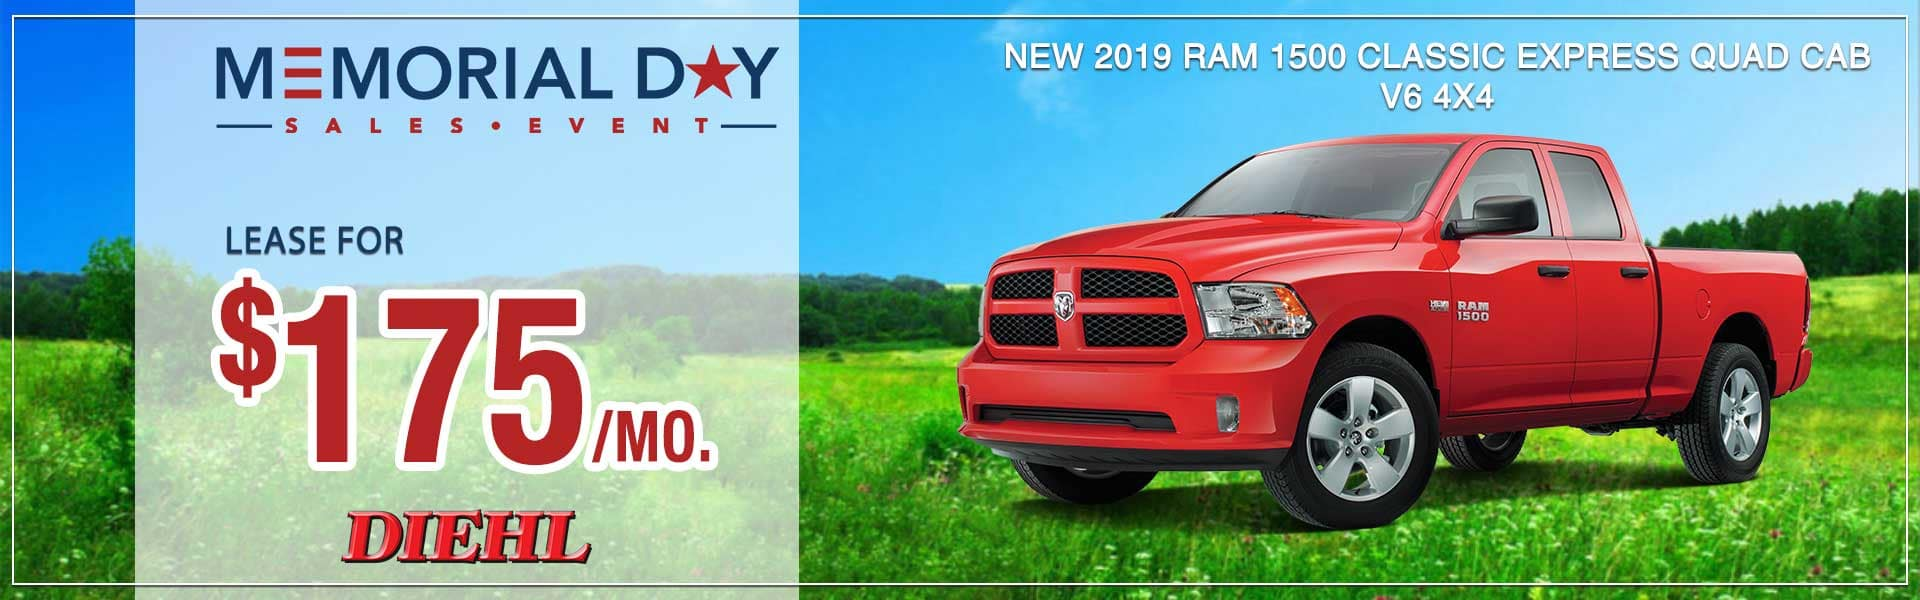 Diehl of Robinson Robinson Township, pa. Chrysler Jeep Dodge Ram. New, used, parts, service, accessories NEW 2019 RAM 1500 CLASSIC EXPRESS QUAD CAB® 4X4 6'4